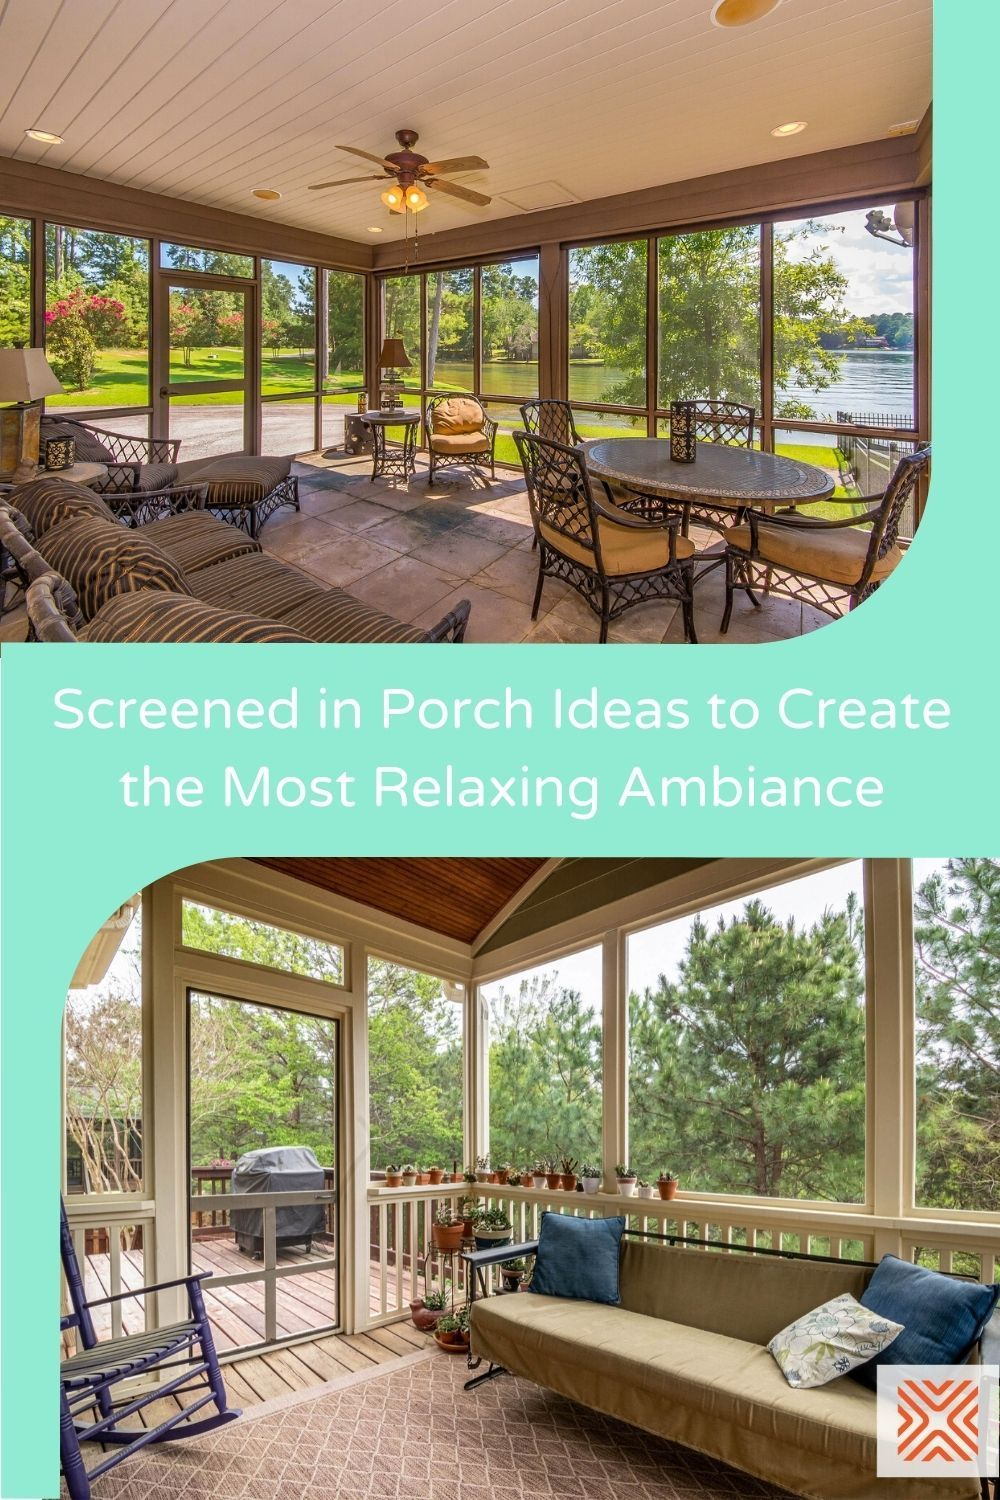 Turning a boring porch design into a beautiful space can be easy! Just check out these 8 screened in porch designs and create a relaxing space you and your family can enjoy.